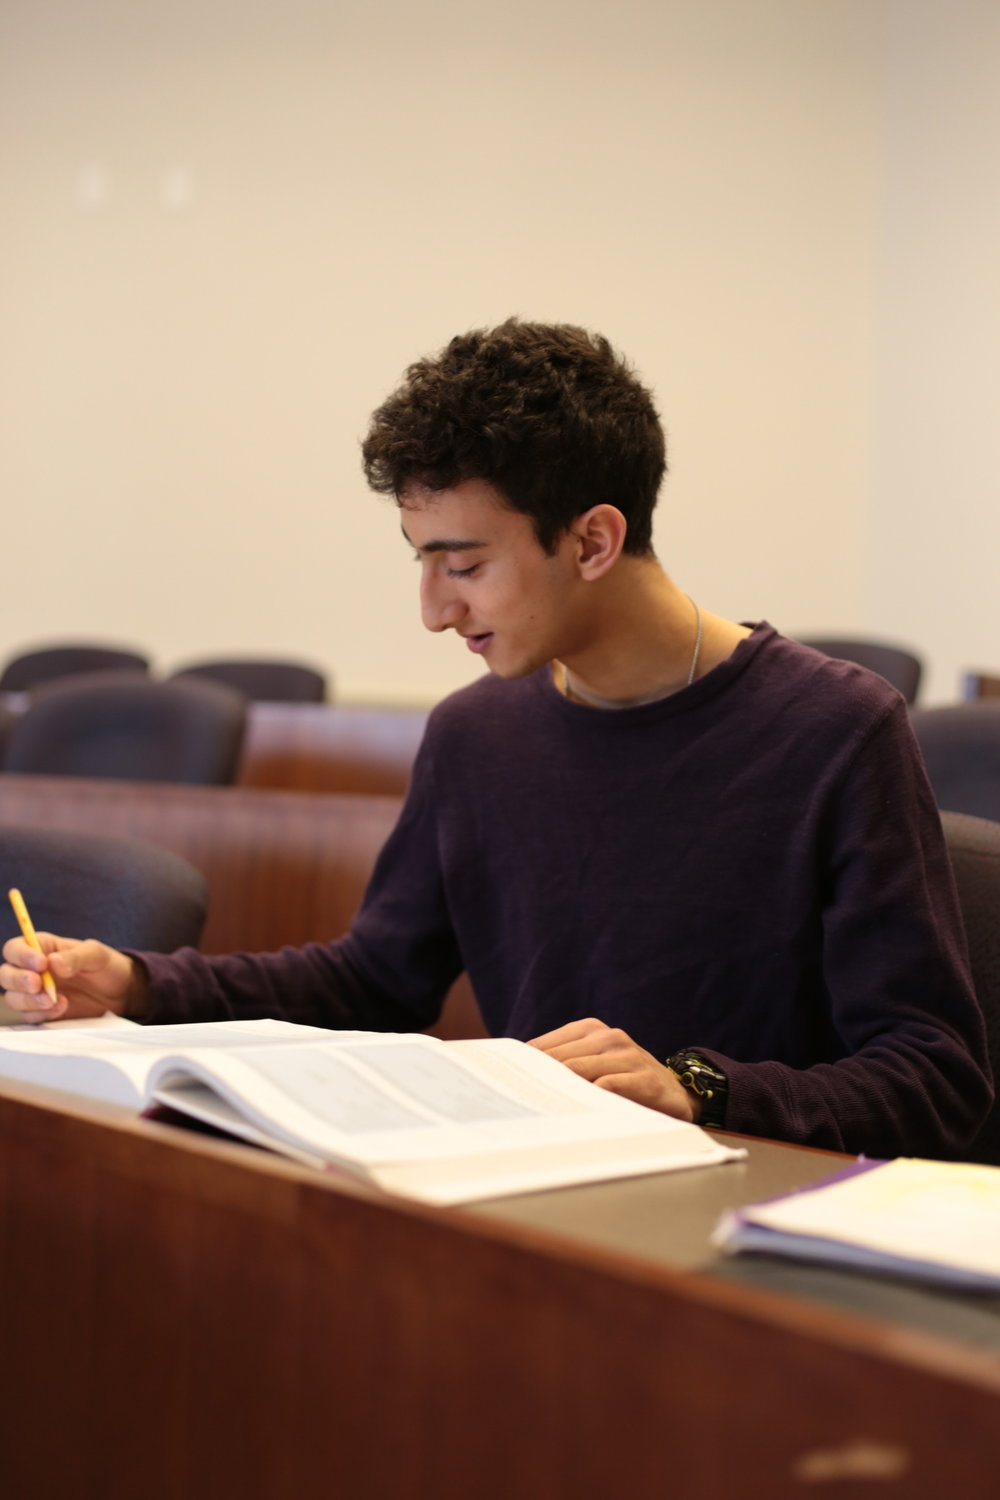 Bailey studies for a weekly tax quiz in a classroom at the Whitman School of Management building on Wednesday. Photo by  Jiaman (Maggie) Peng .